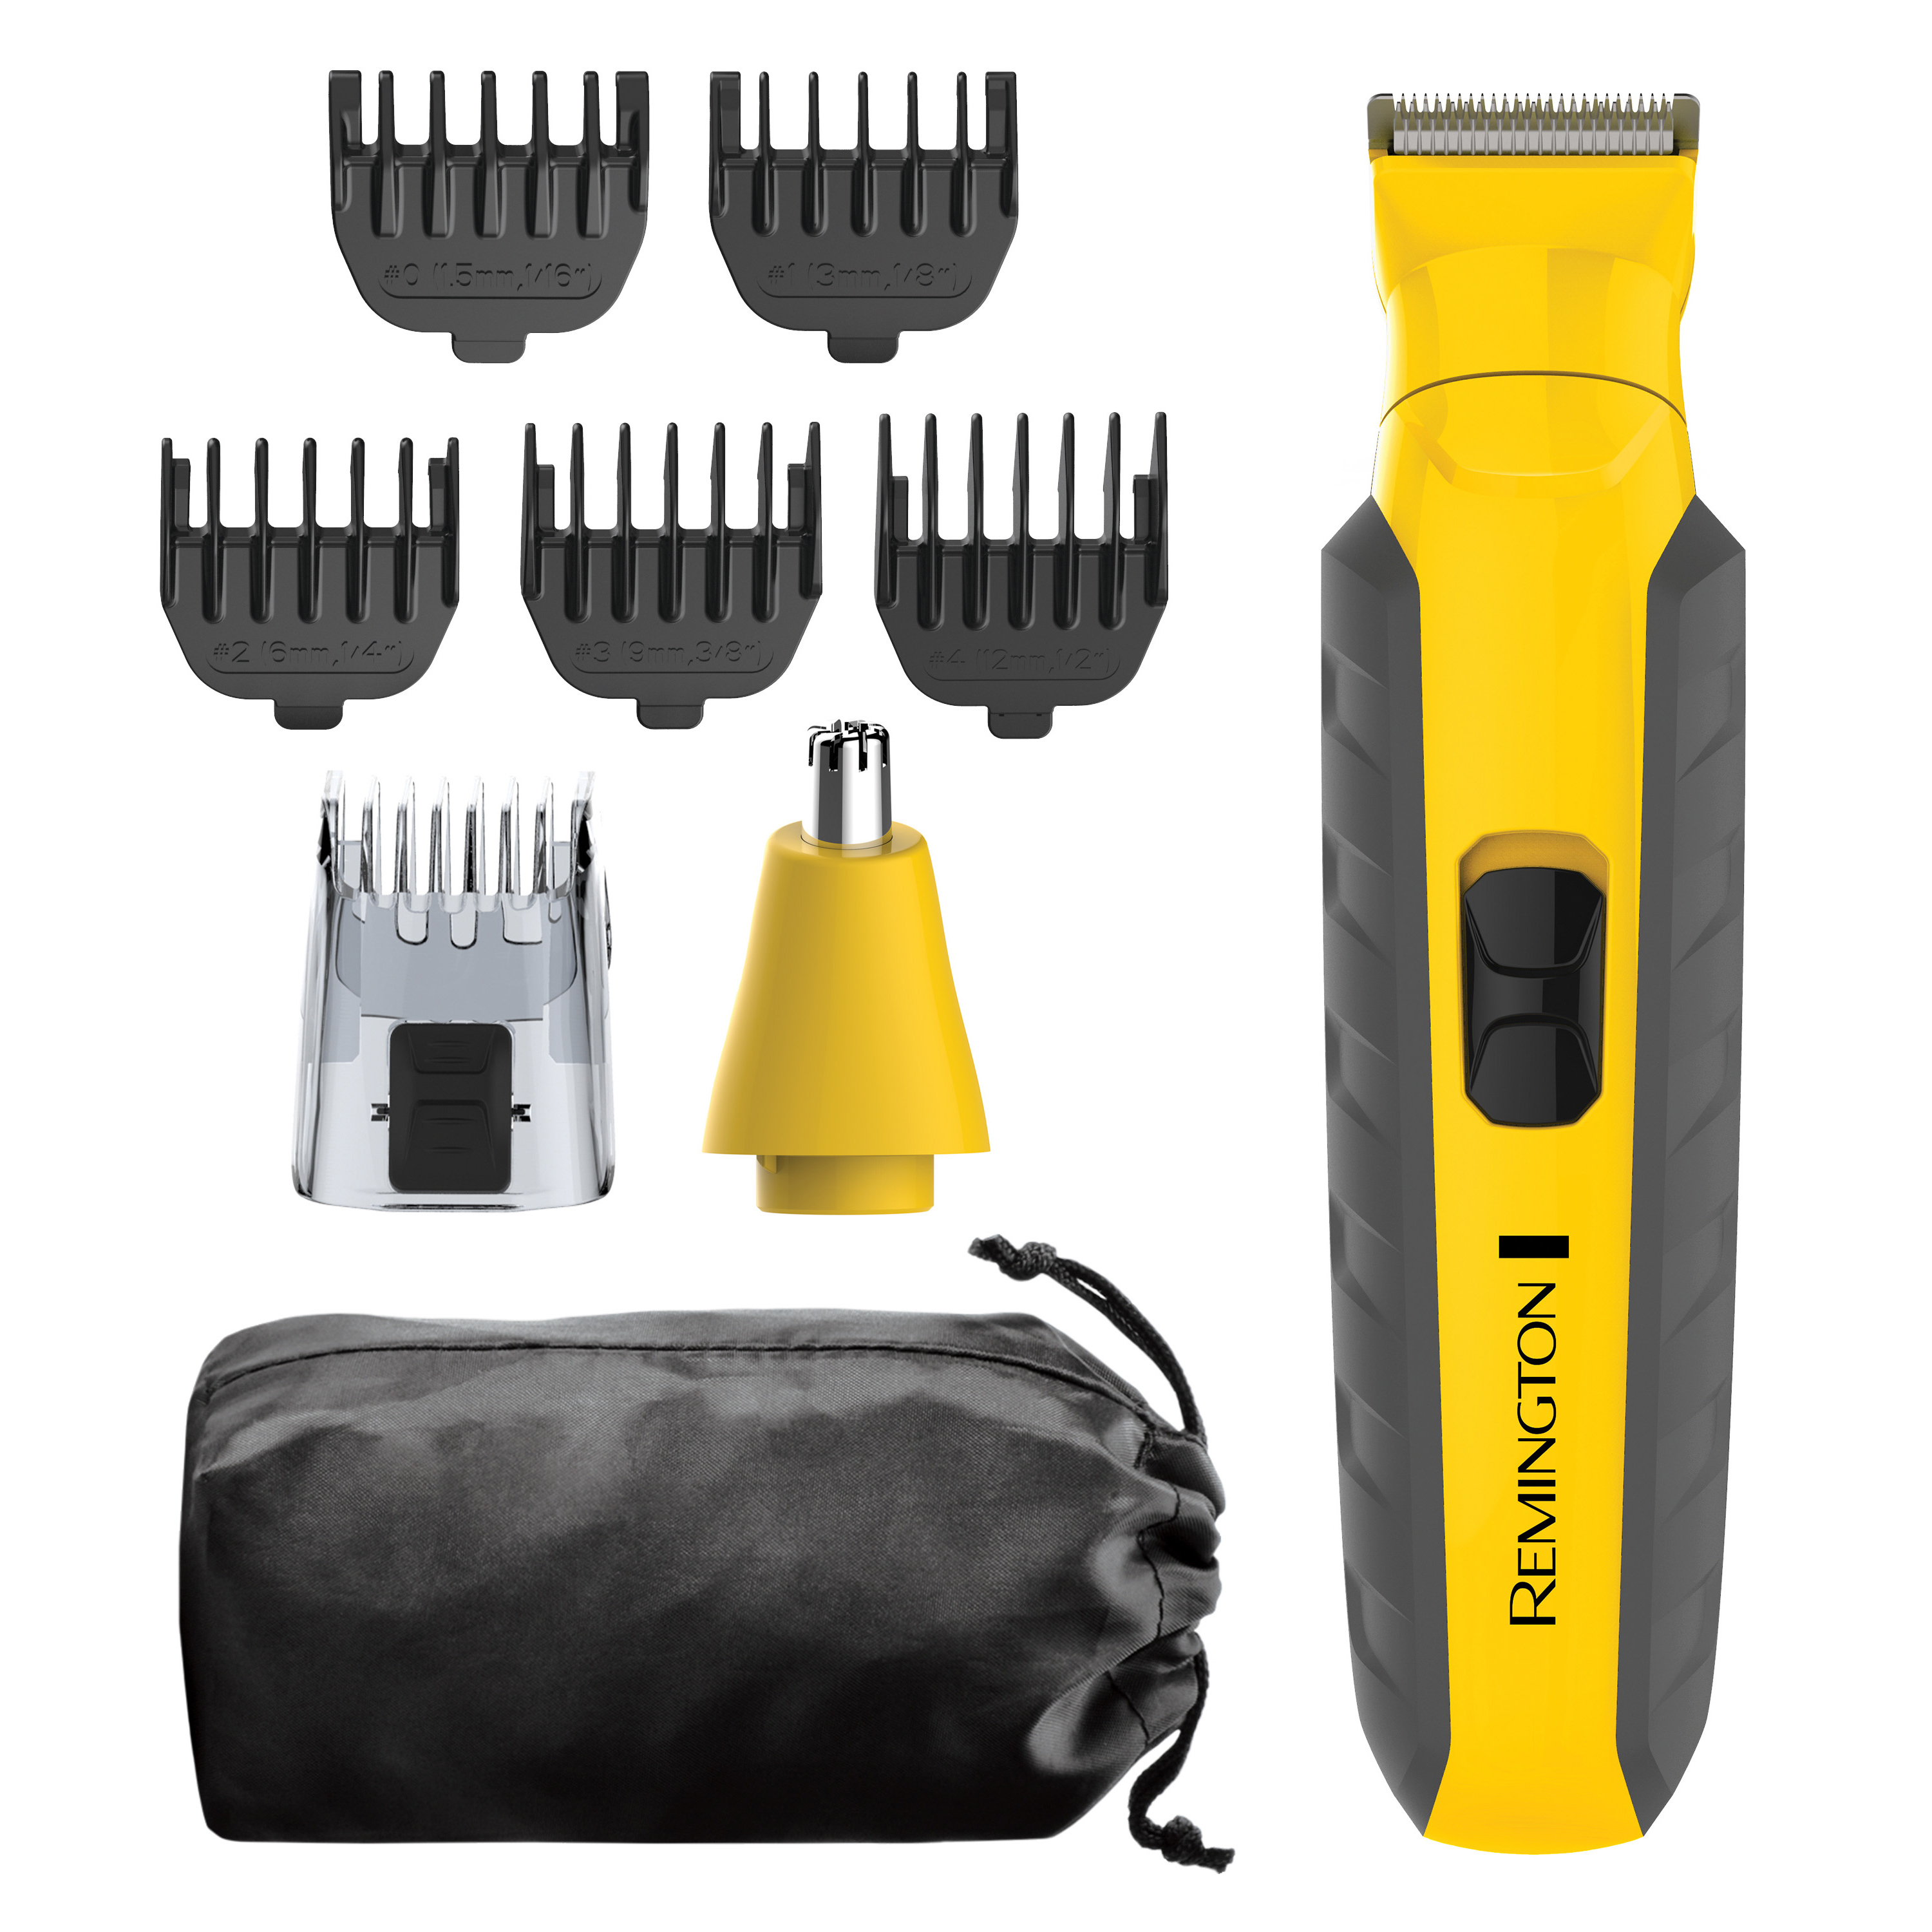 Remington Virtually Indestructible All-in-One Grooming Kit, Yellow/Black, PG6855